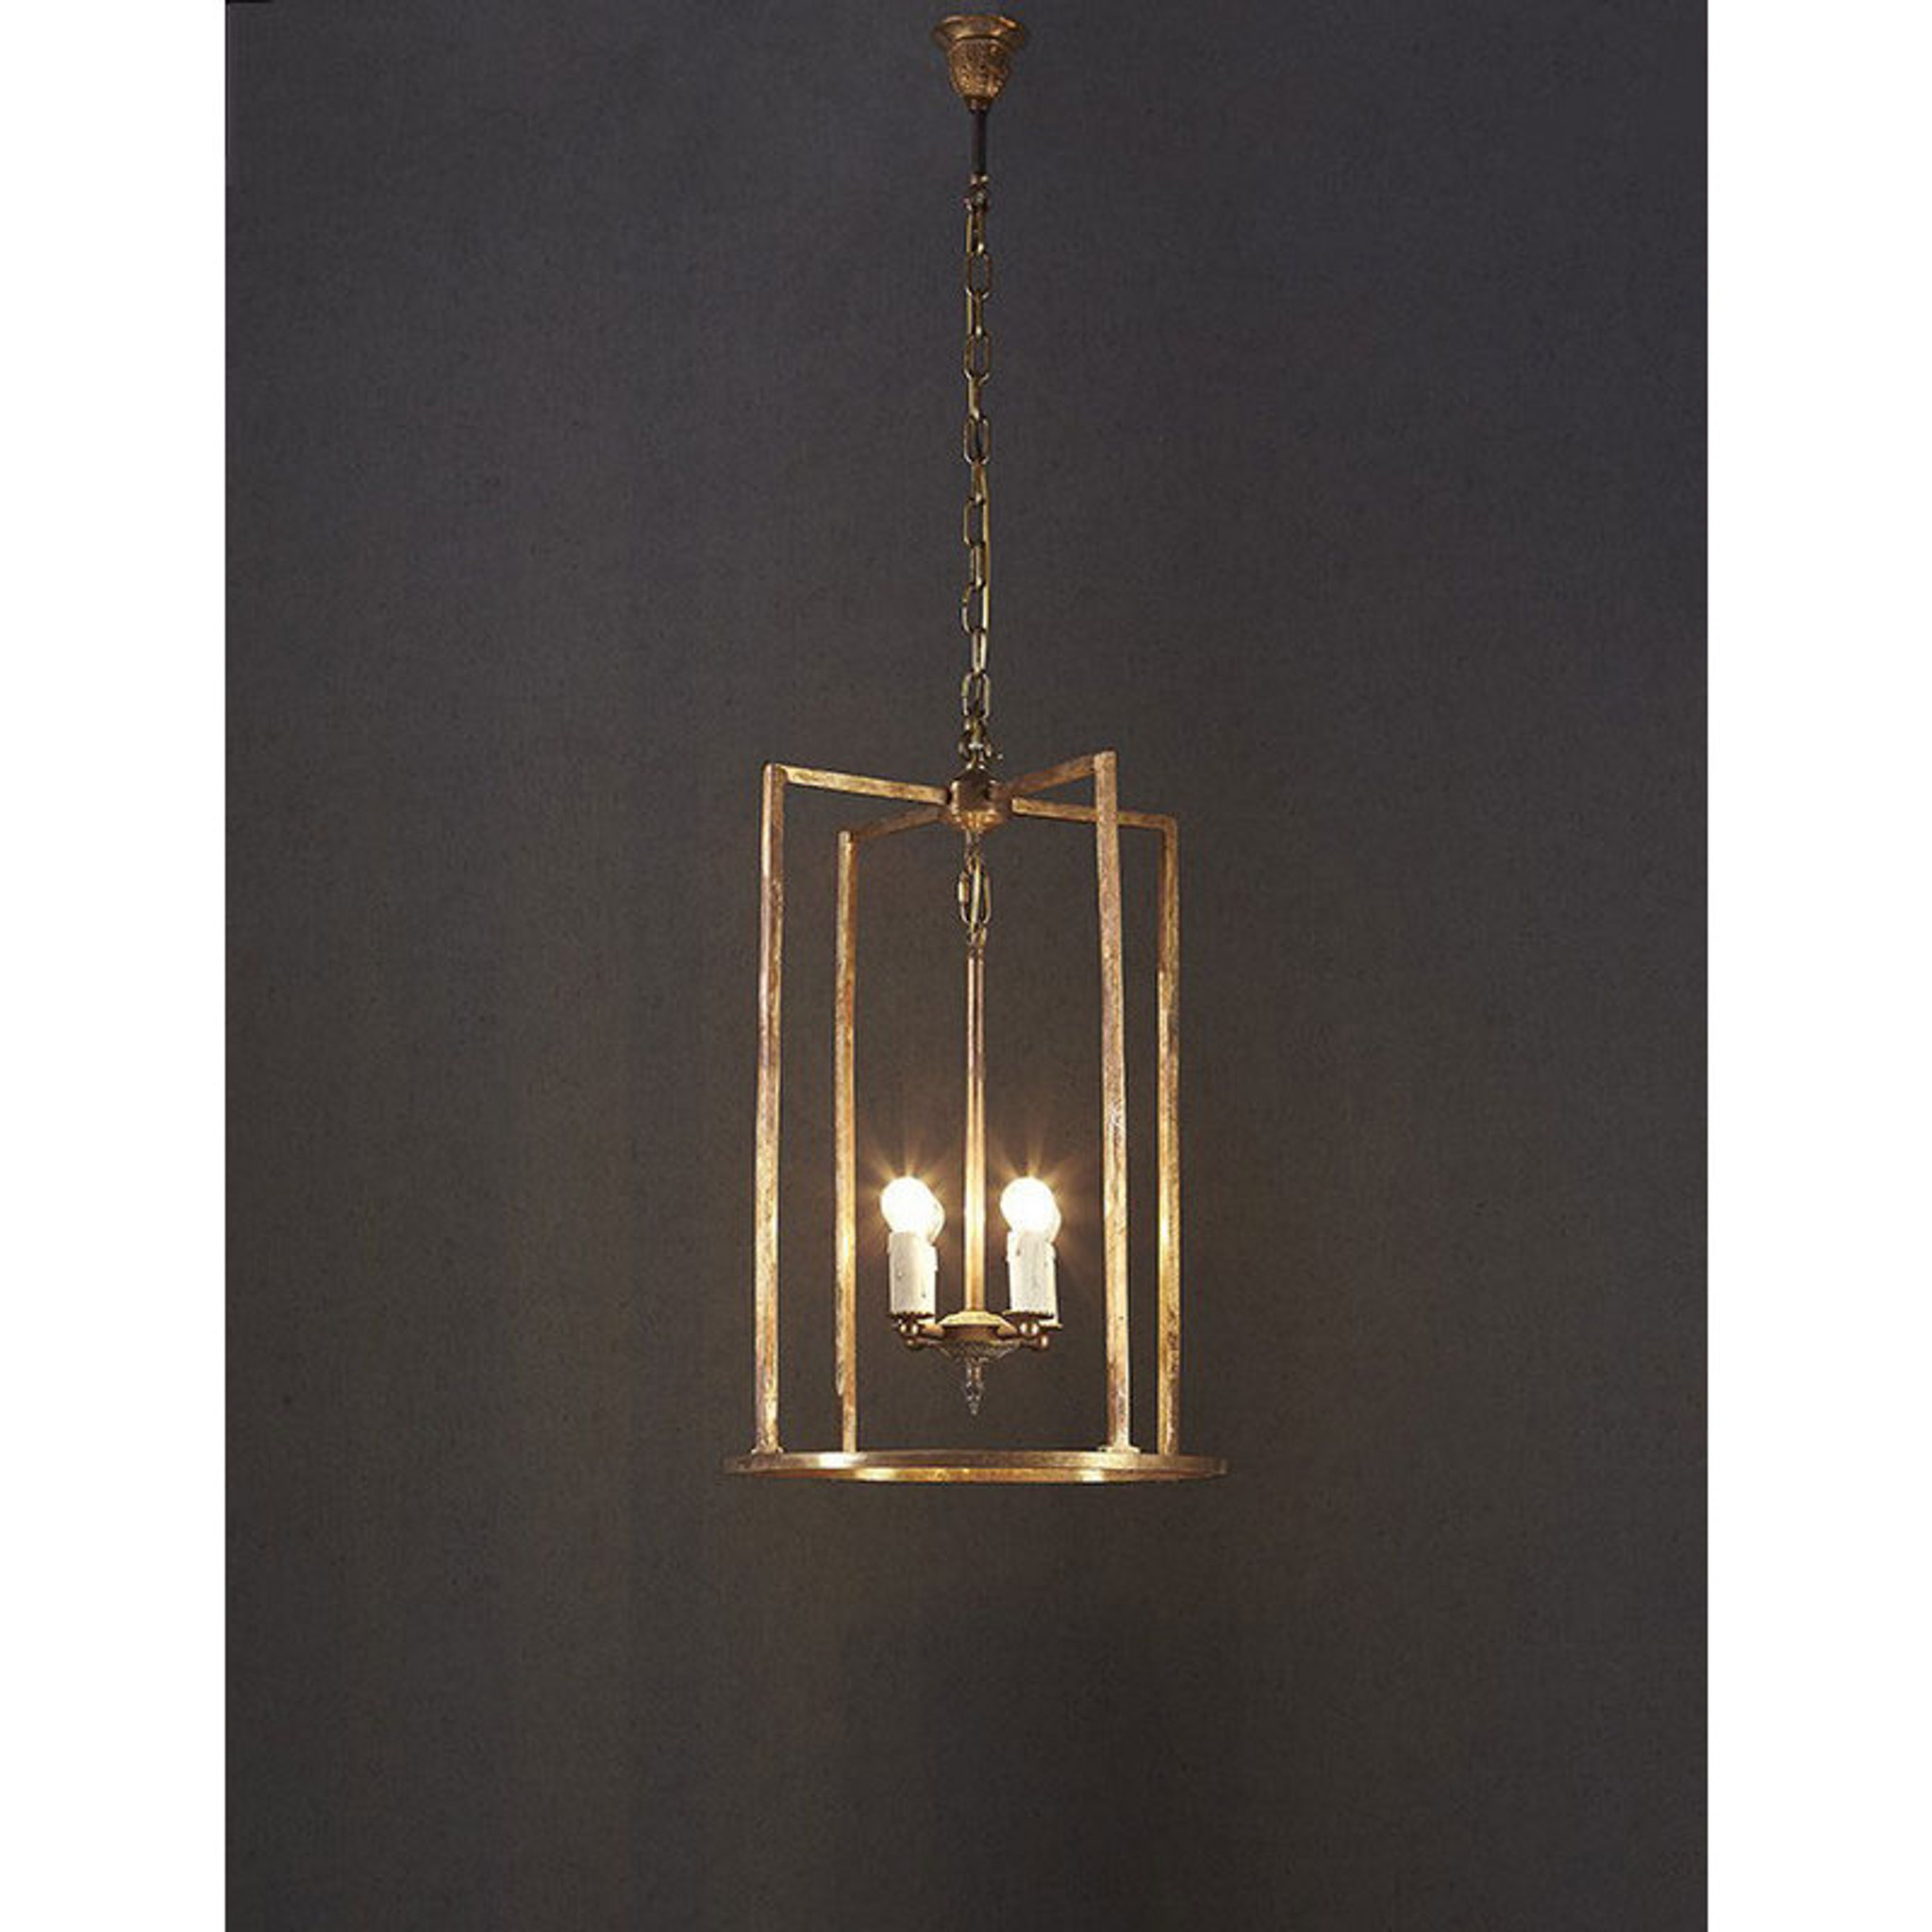 St palais chandelier large lighting emac and lawton for Lawton architectural products